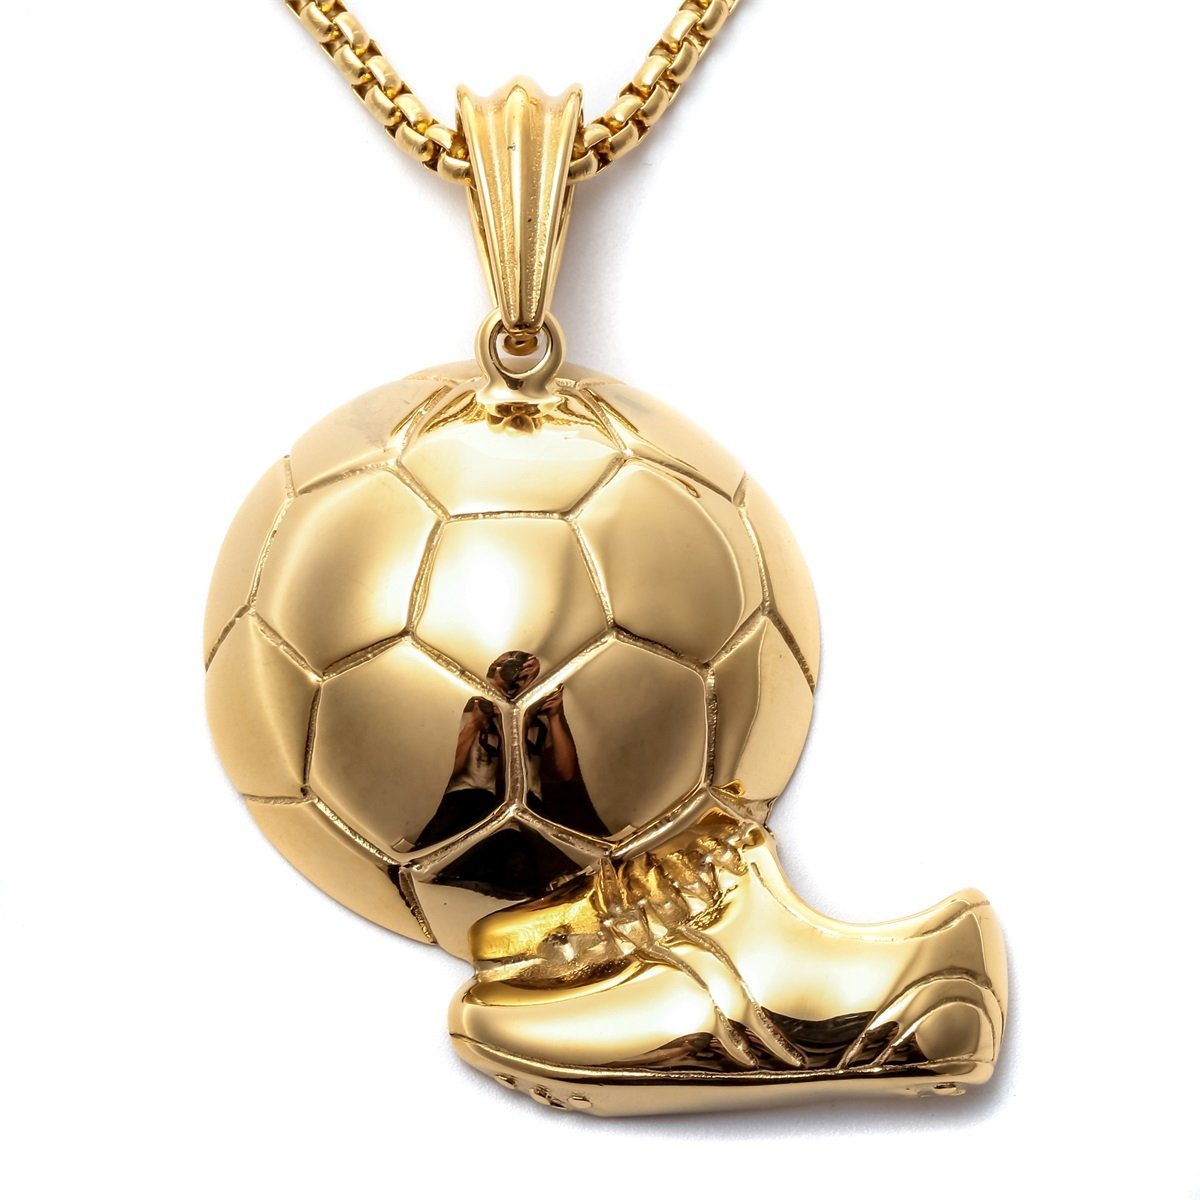 necklace eden stamped shop gold love hand reija necklaces jewelry charm handmade football